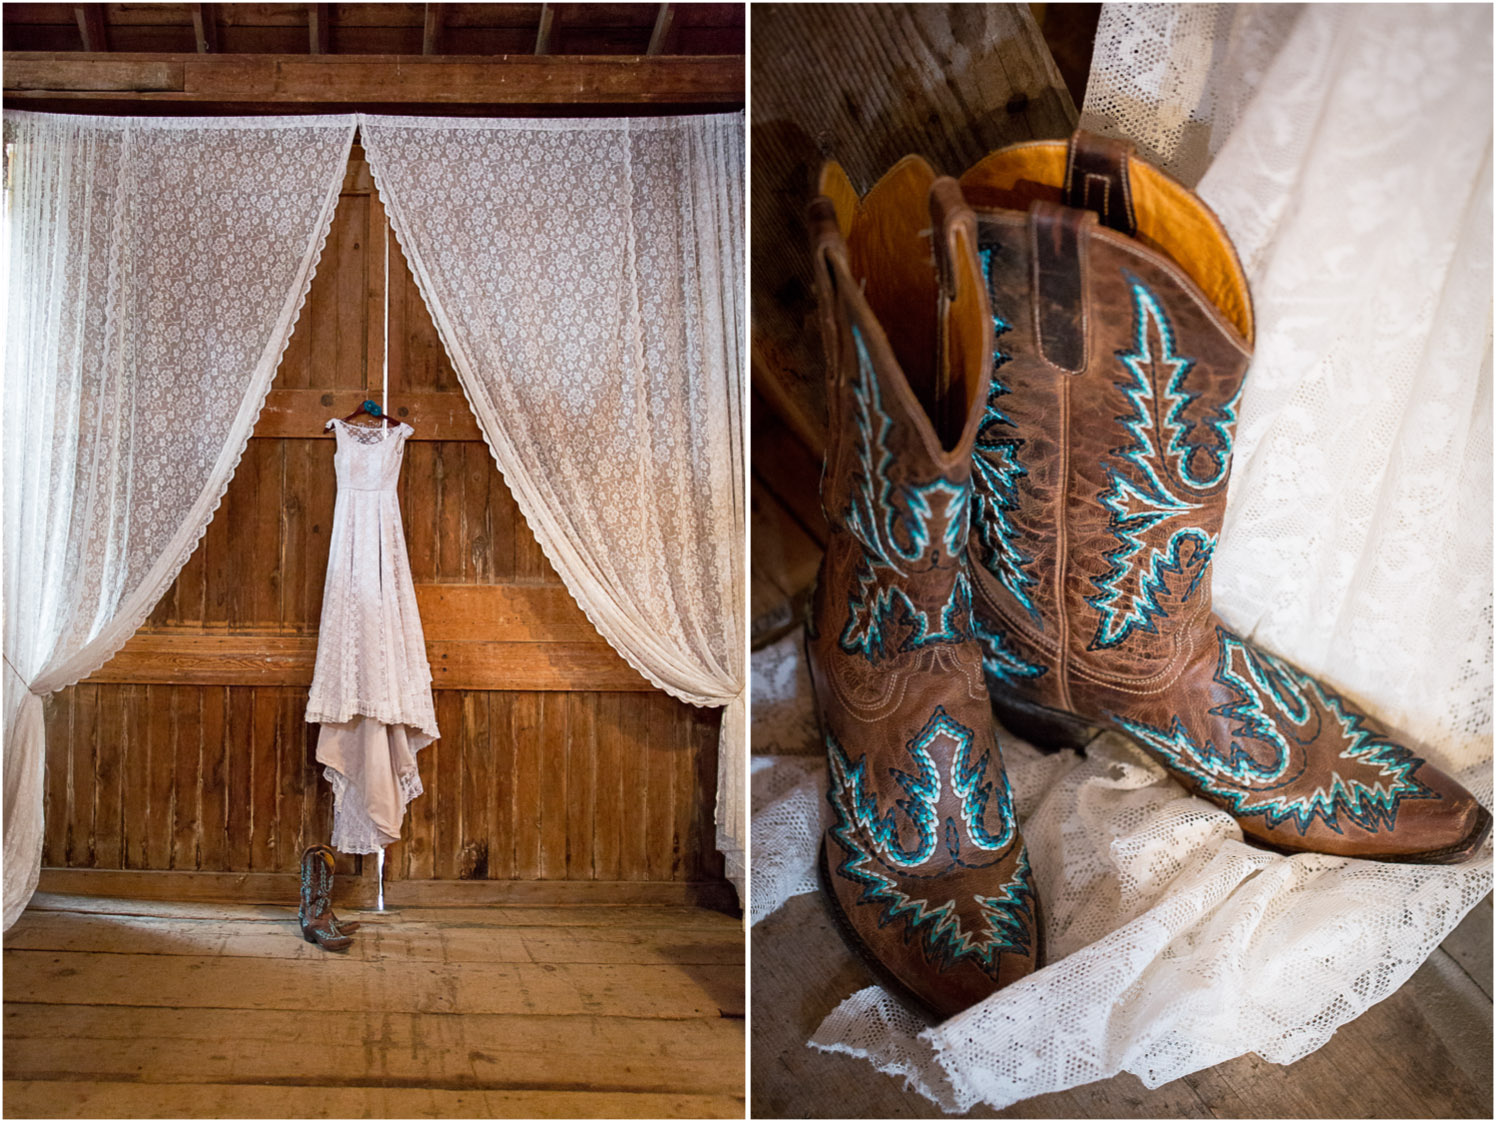 09-dellwood-barn-minnesota-wedding-photographer-farm-bridal-details-heirloom-dress-lace-gown-cowboy-boots-curtains-mahonen-photography.jpg